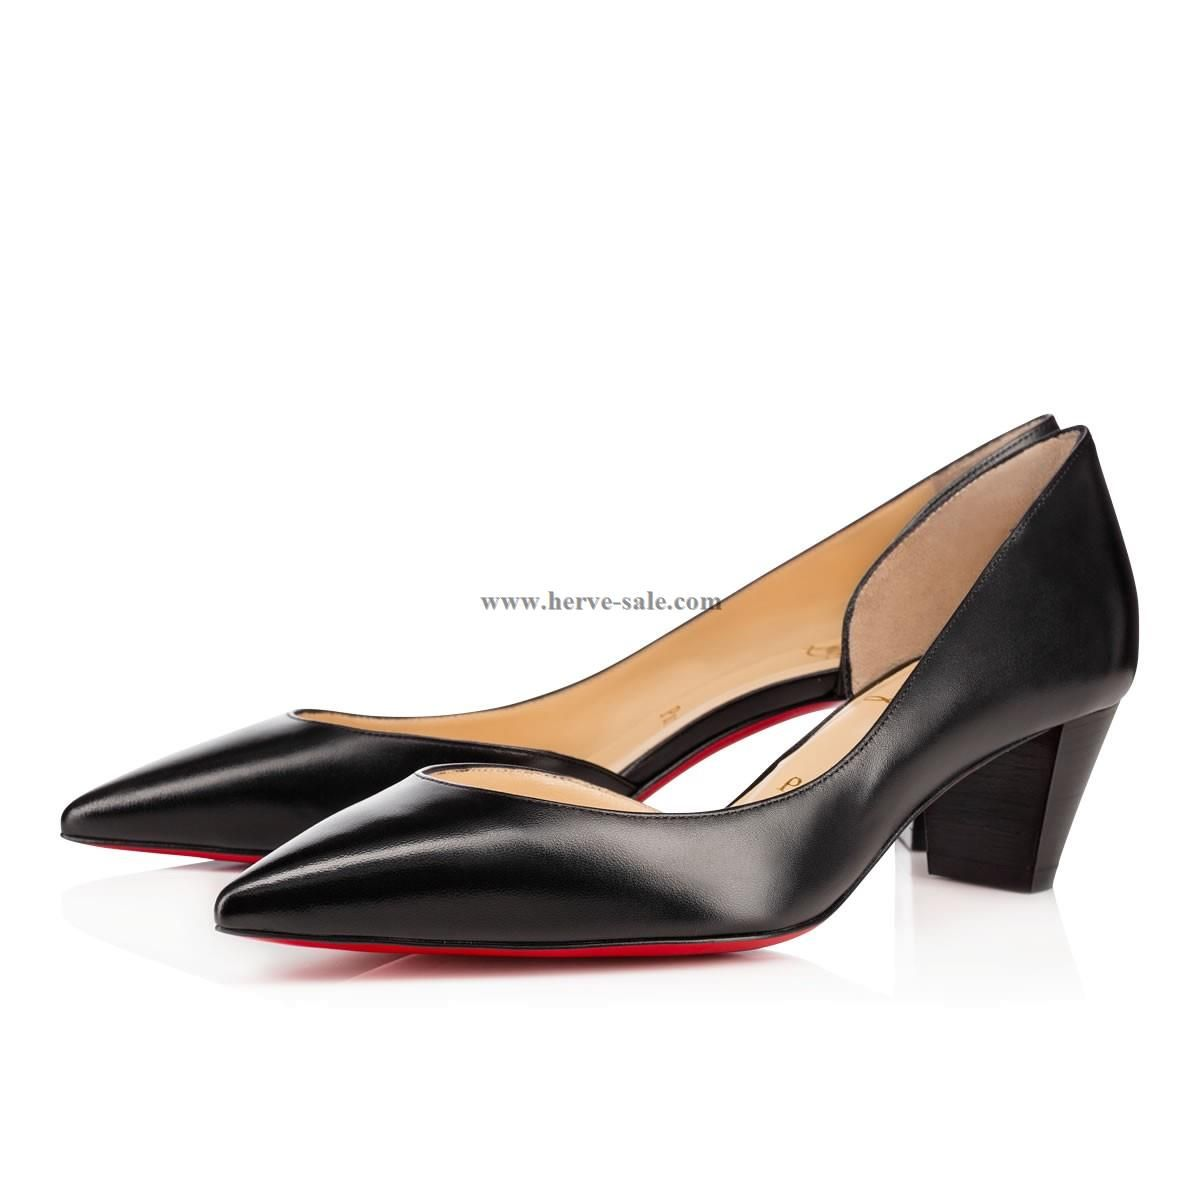 christian louboutin karera 45mm